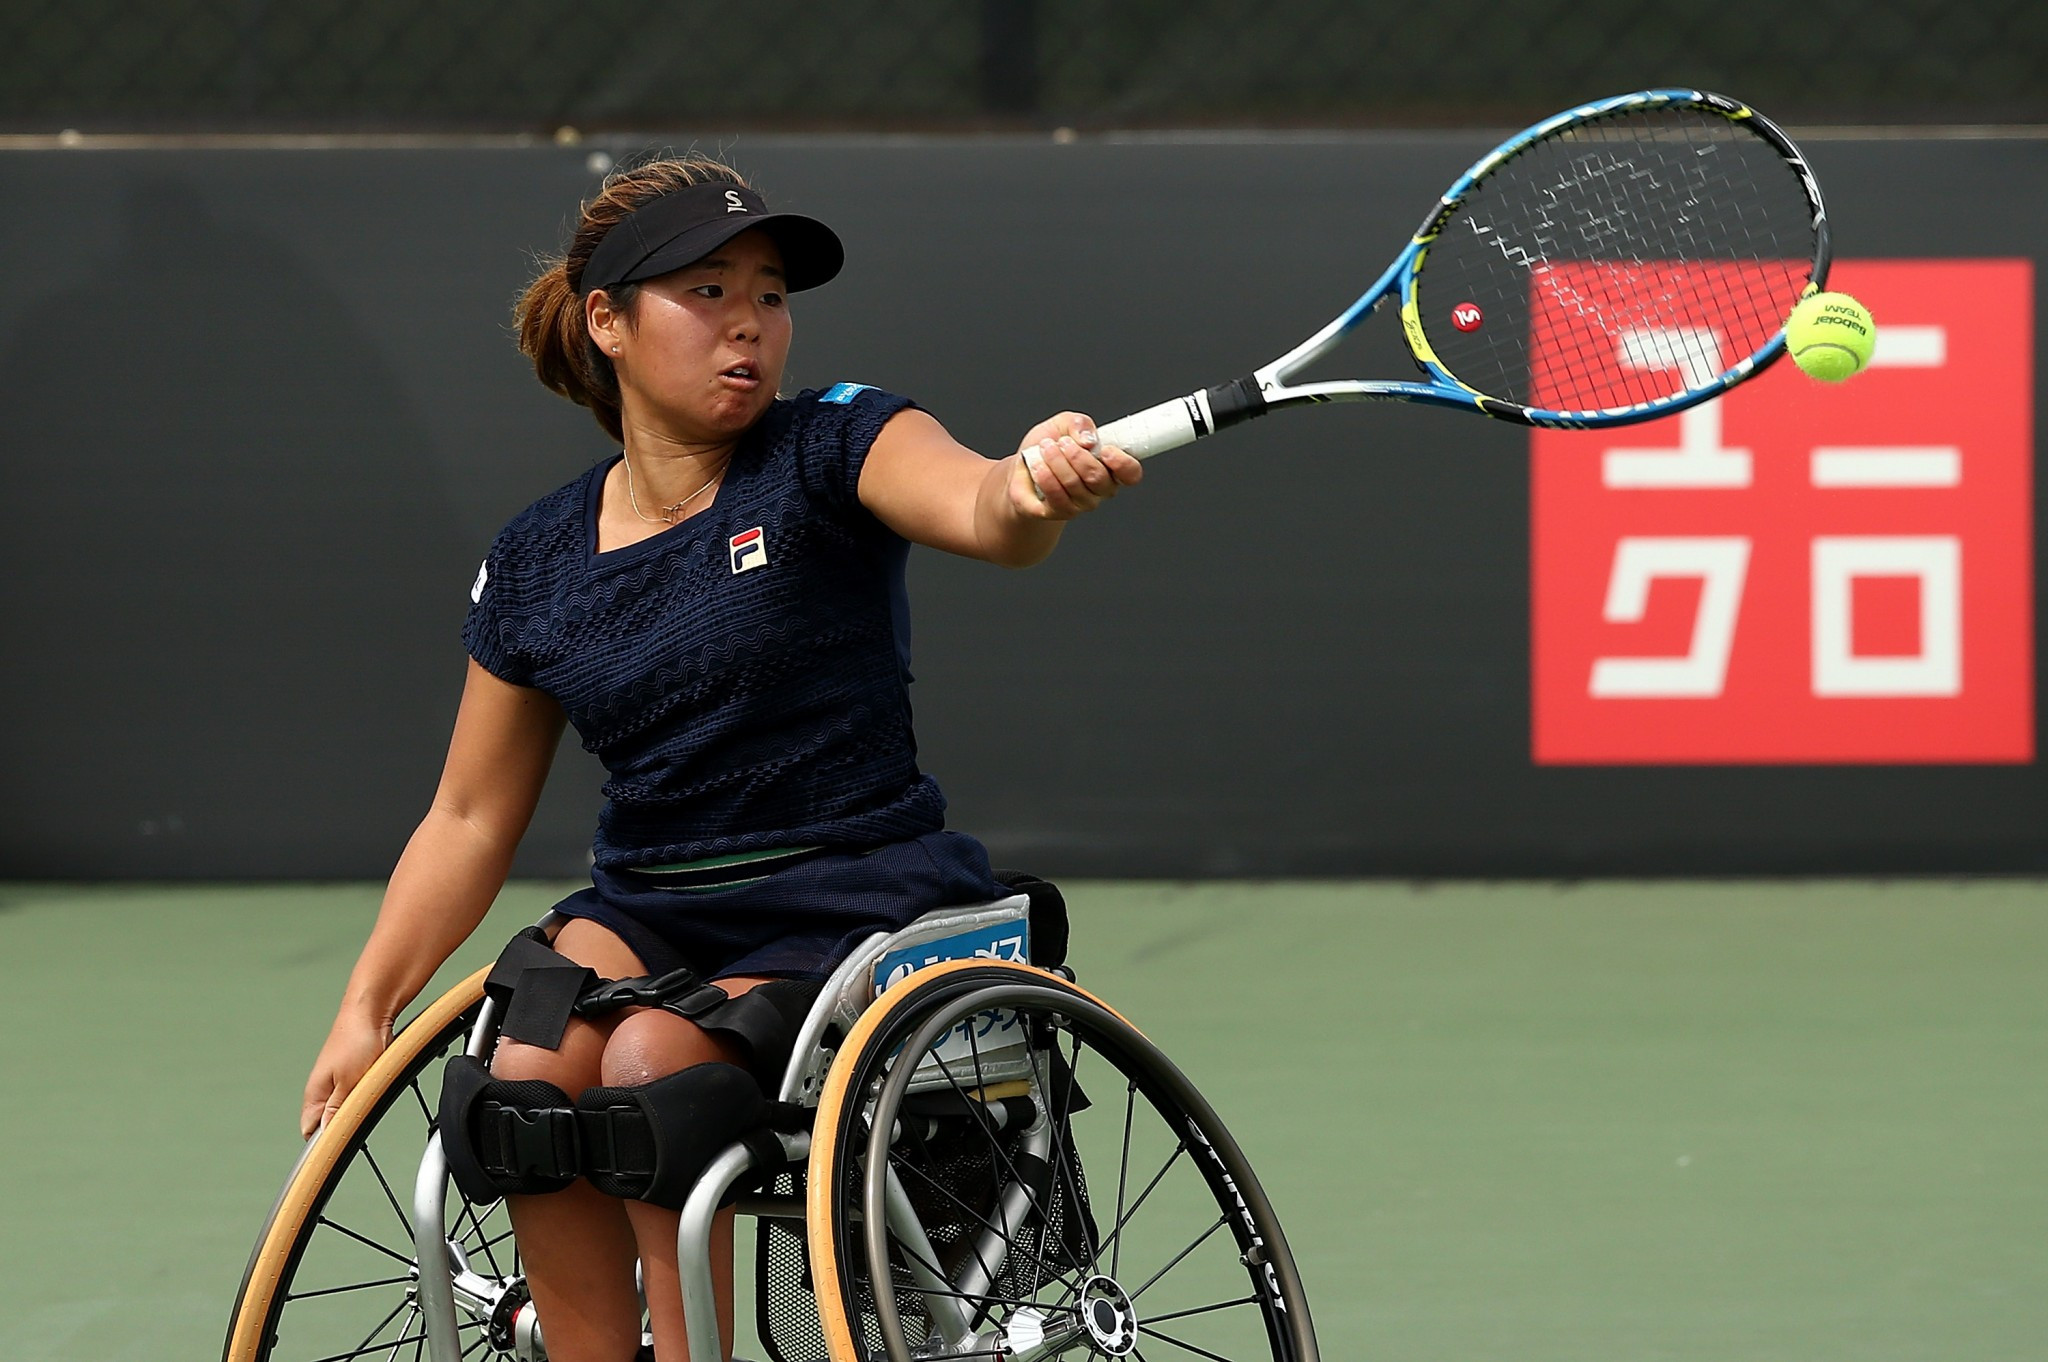 Japan's Yui Kamiji won the women's title at the British Open Wheelchair Tennis Championships ©Getty Images